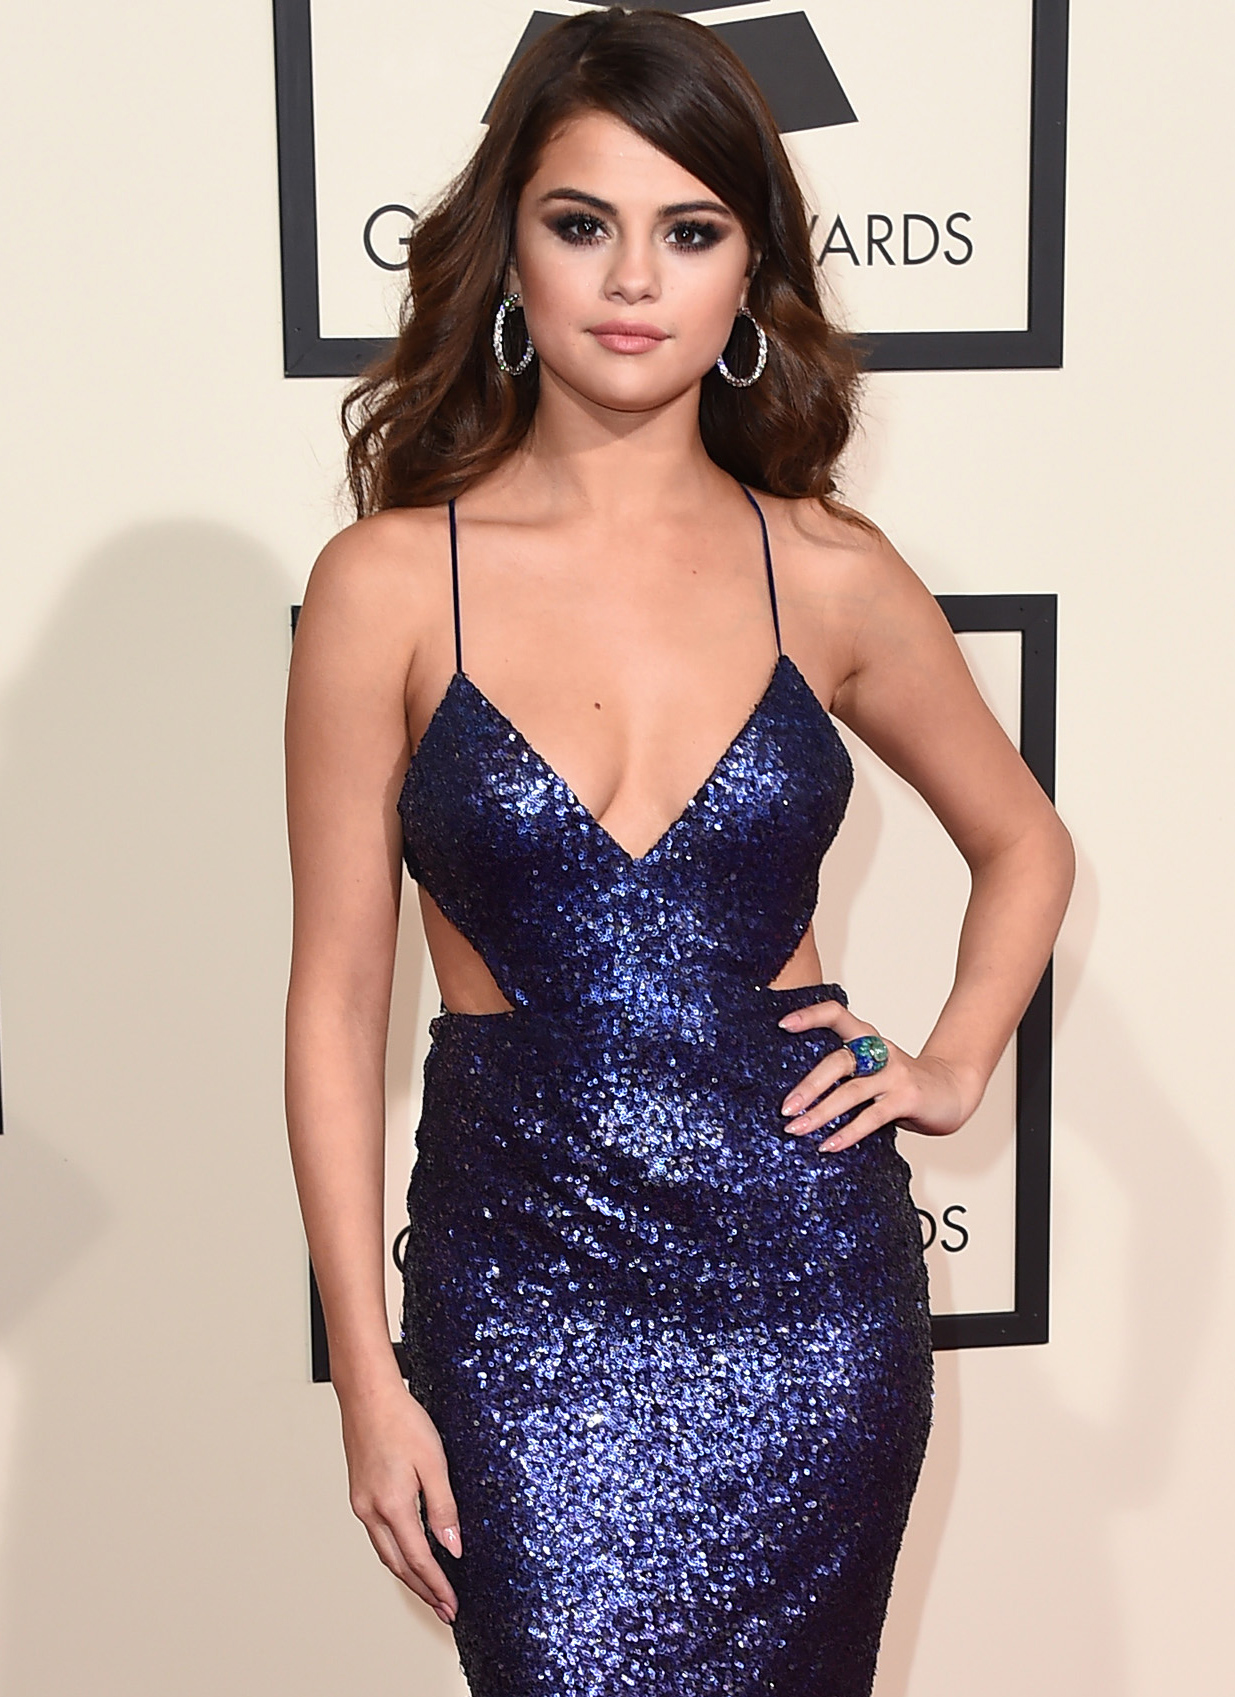 Selena Gomez Addresses the 'Difficult Time' She Went Through Last Year — and Why She 'Can't Stand Social Media'